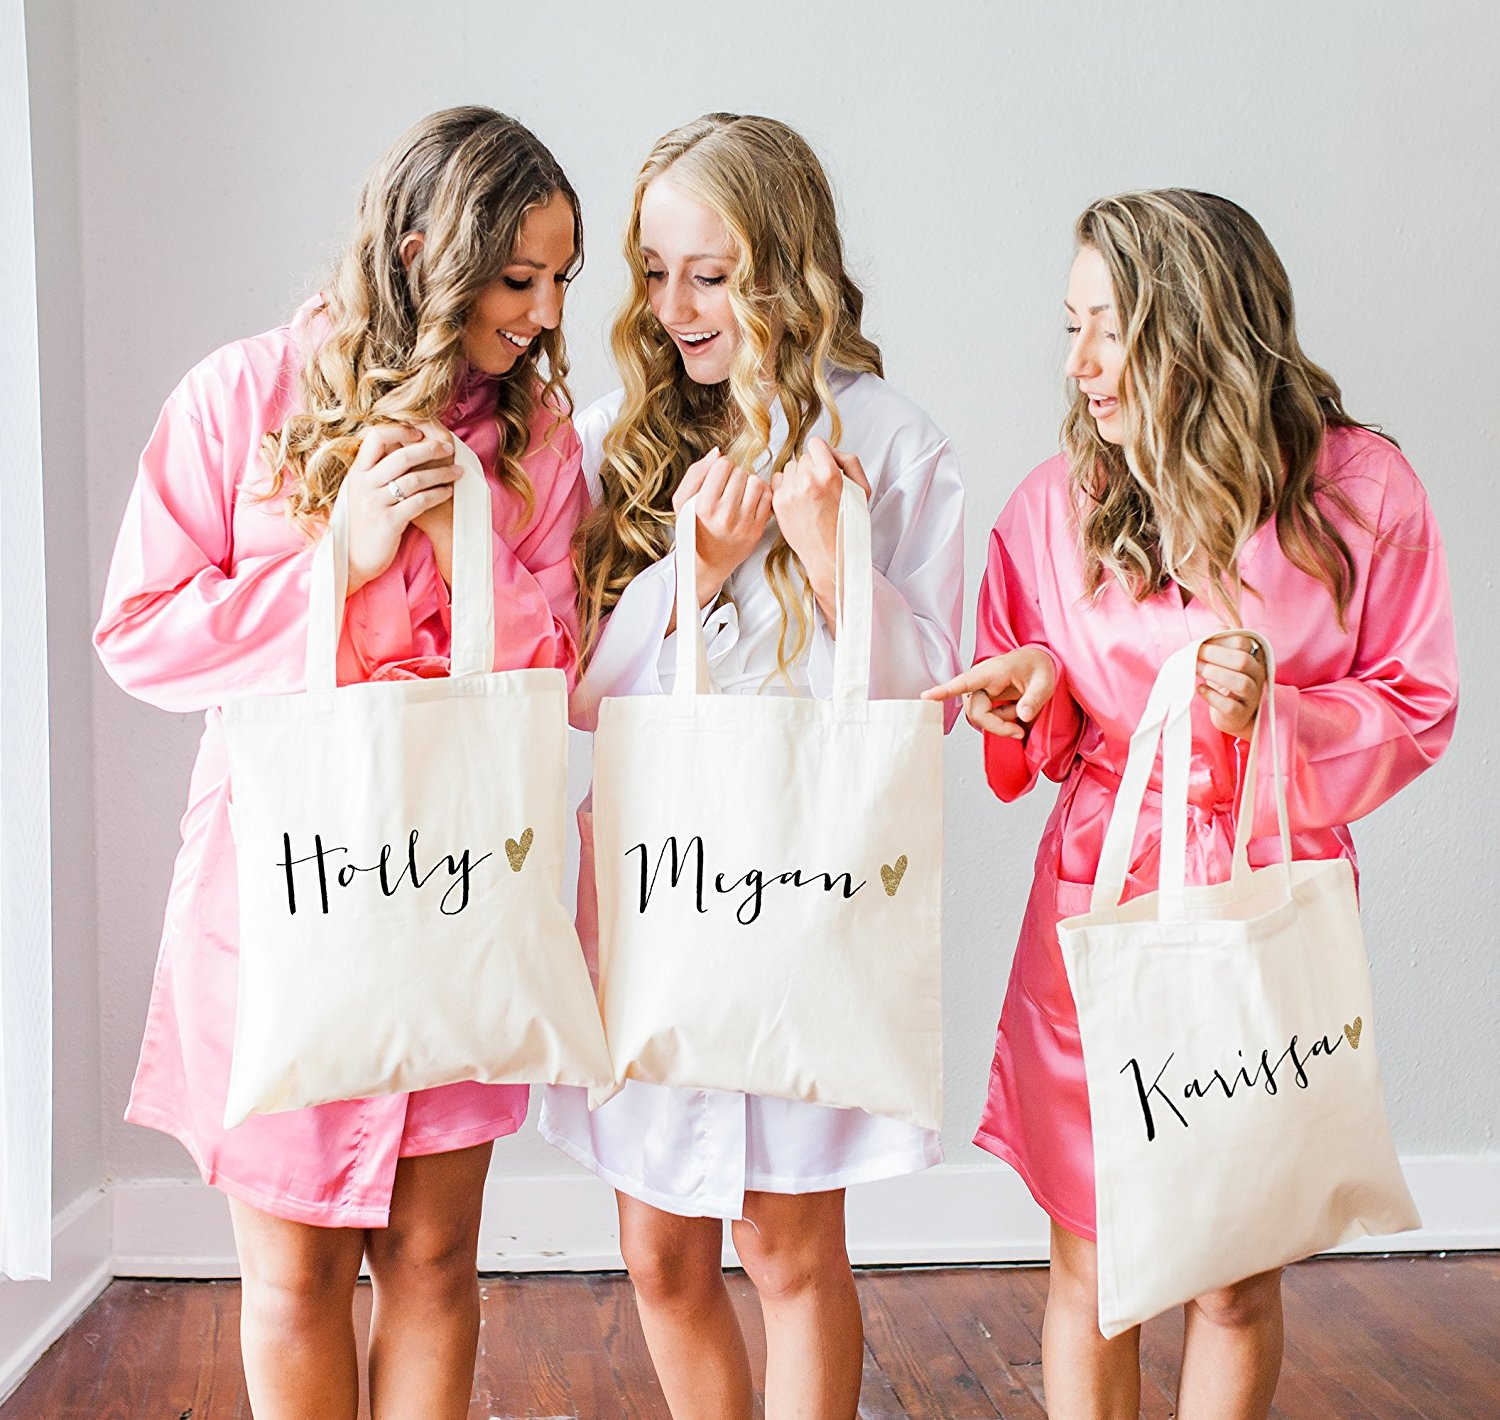 Top 20 Best Bridal Party Proposal Gifts